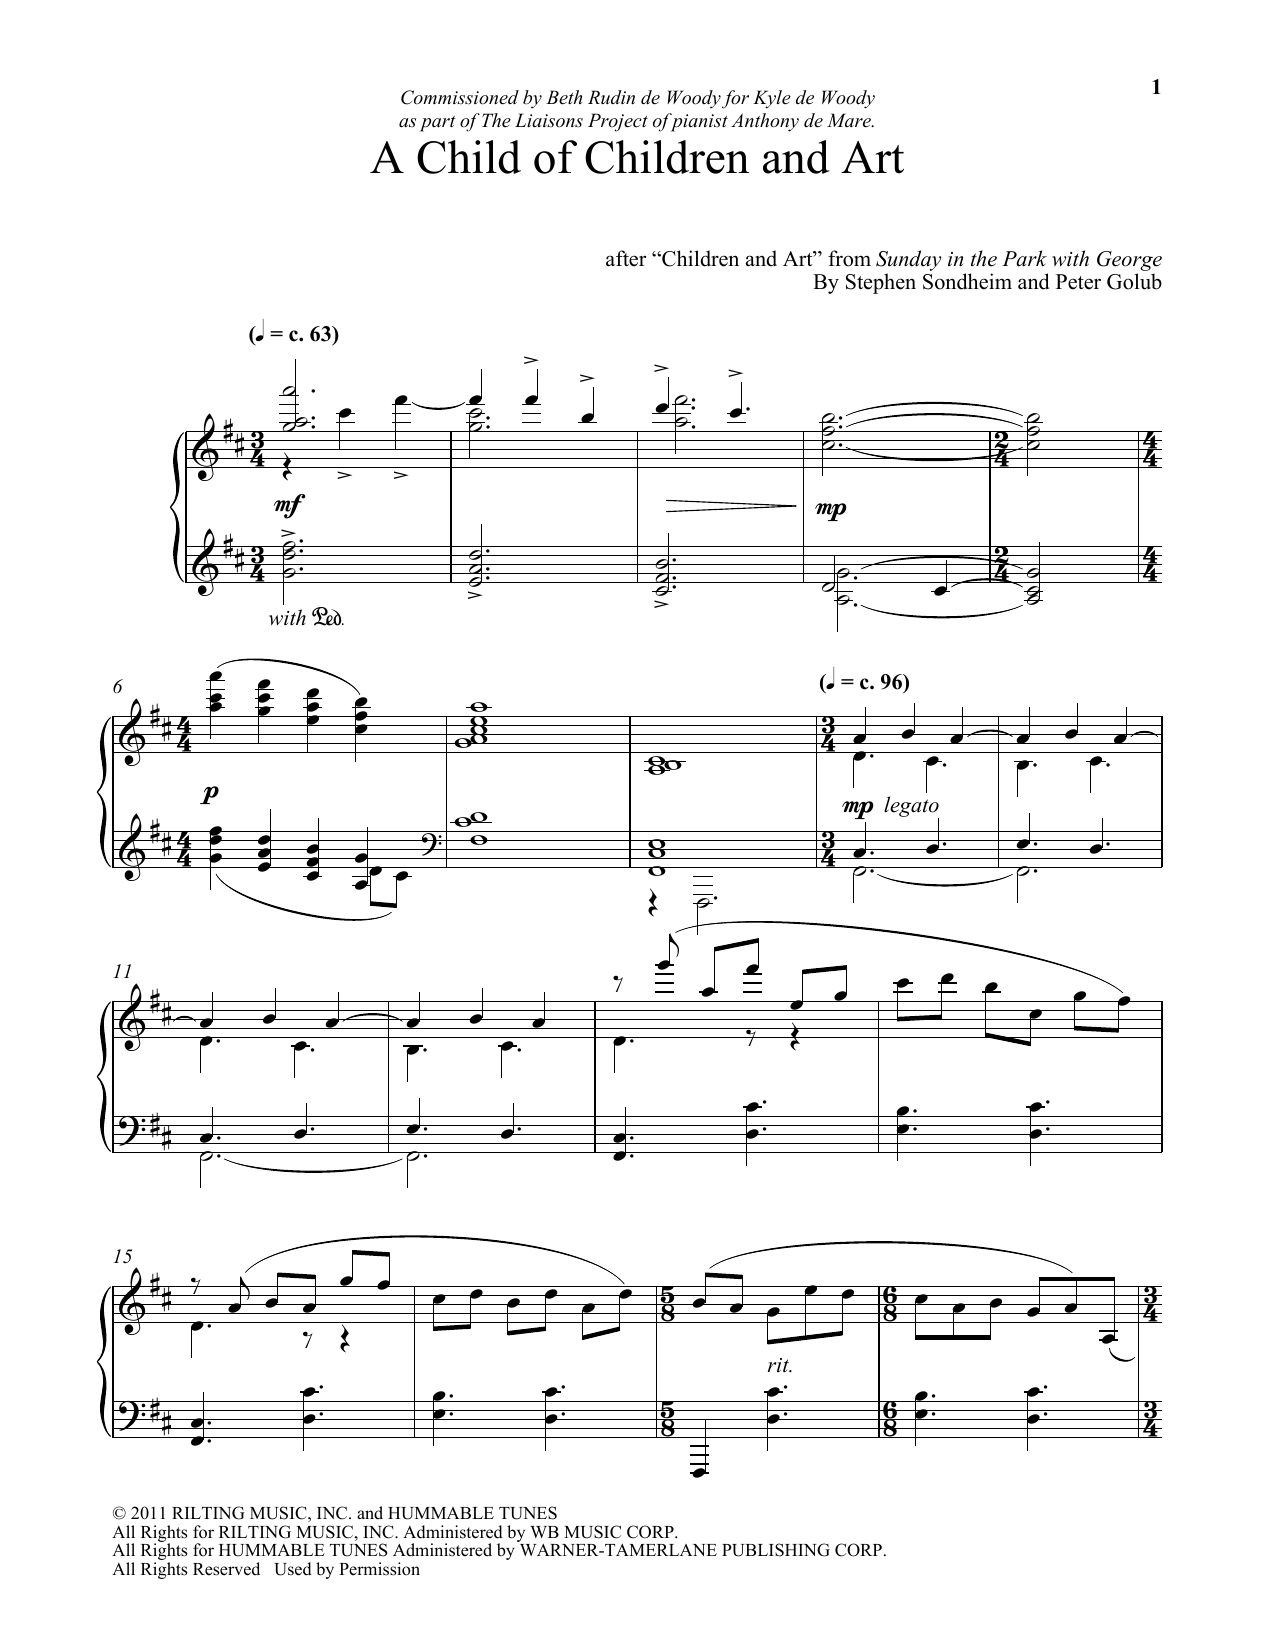 Download Stephen Sondheim 'A Child Of Children And Art (arr. Peter Golub)' Digital Sheet Music Notes & Chords and start playing in minutes